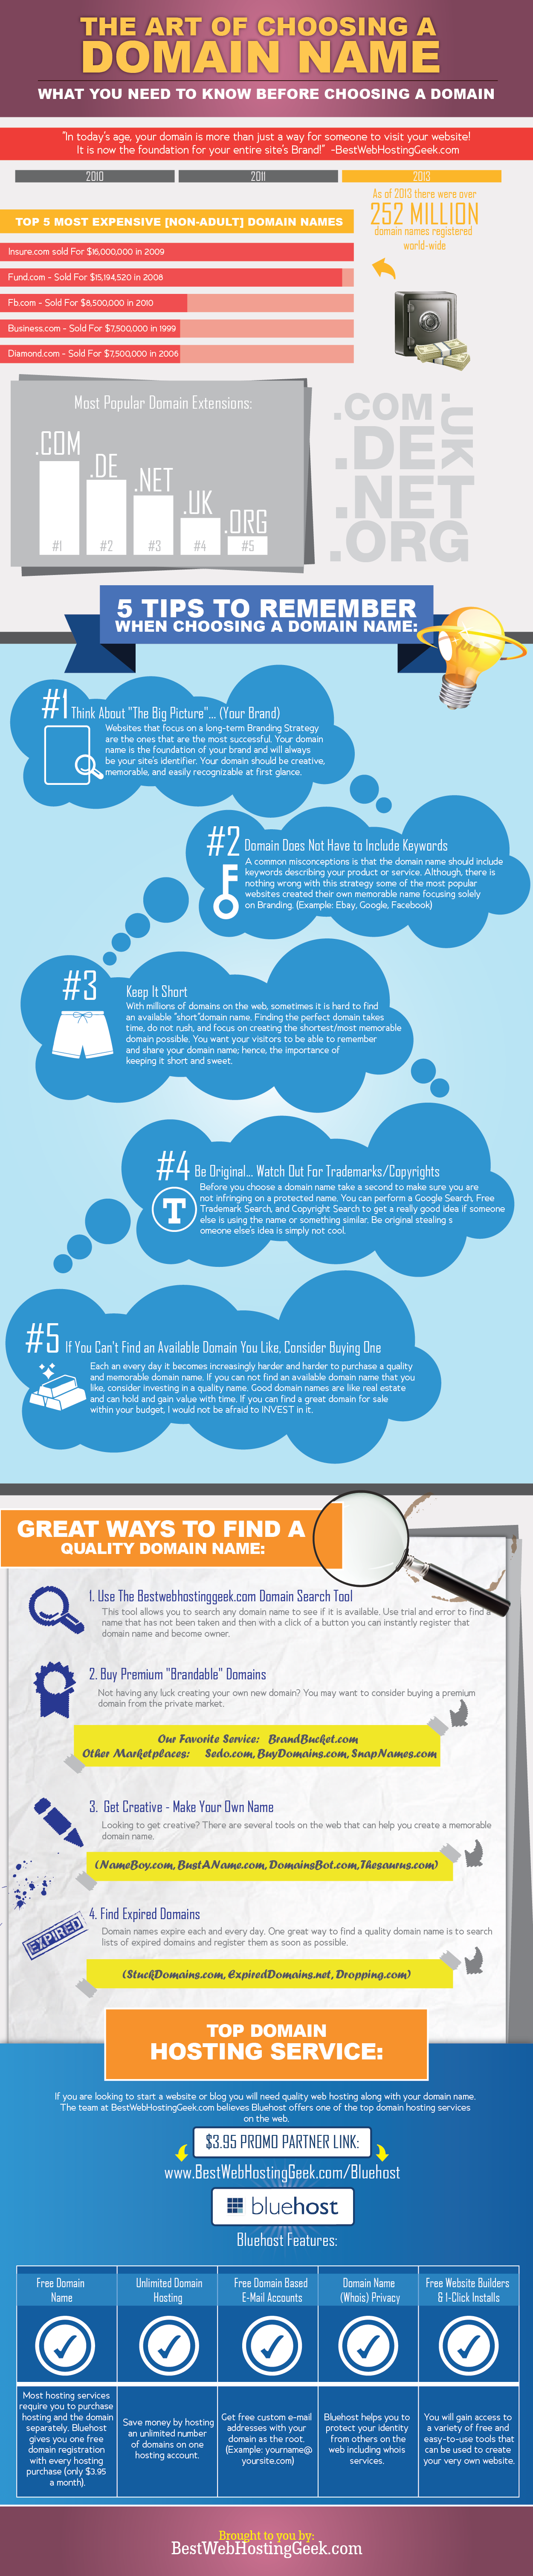 The Art of Choosing a Domain Name (Infographic)